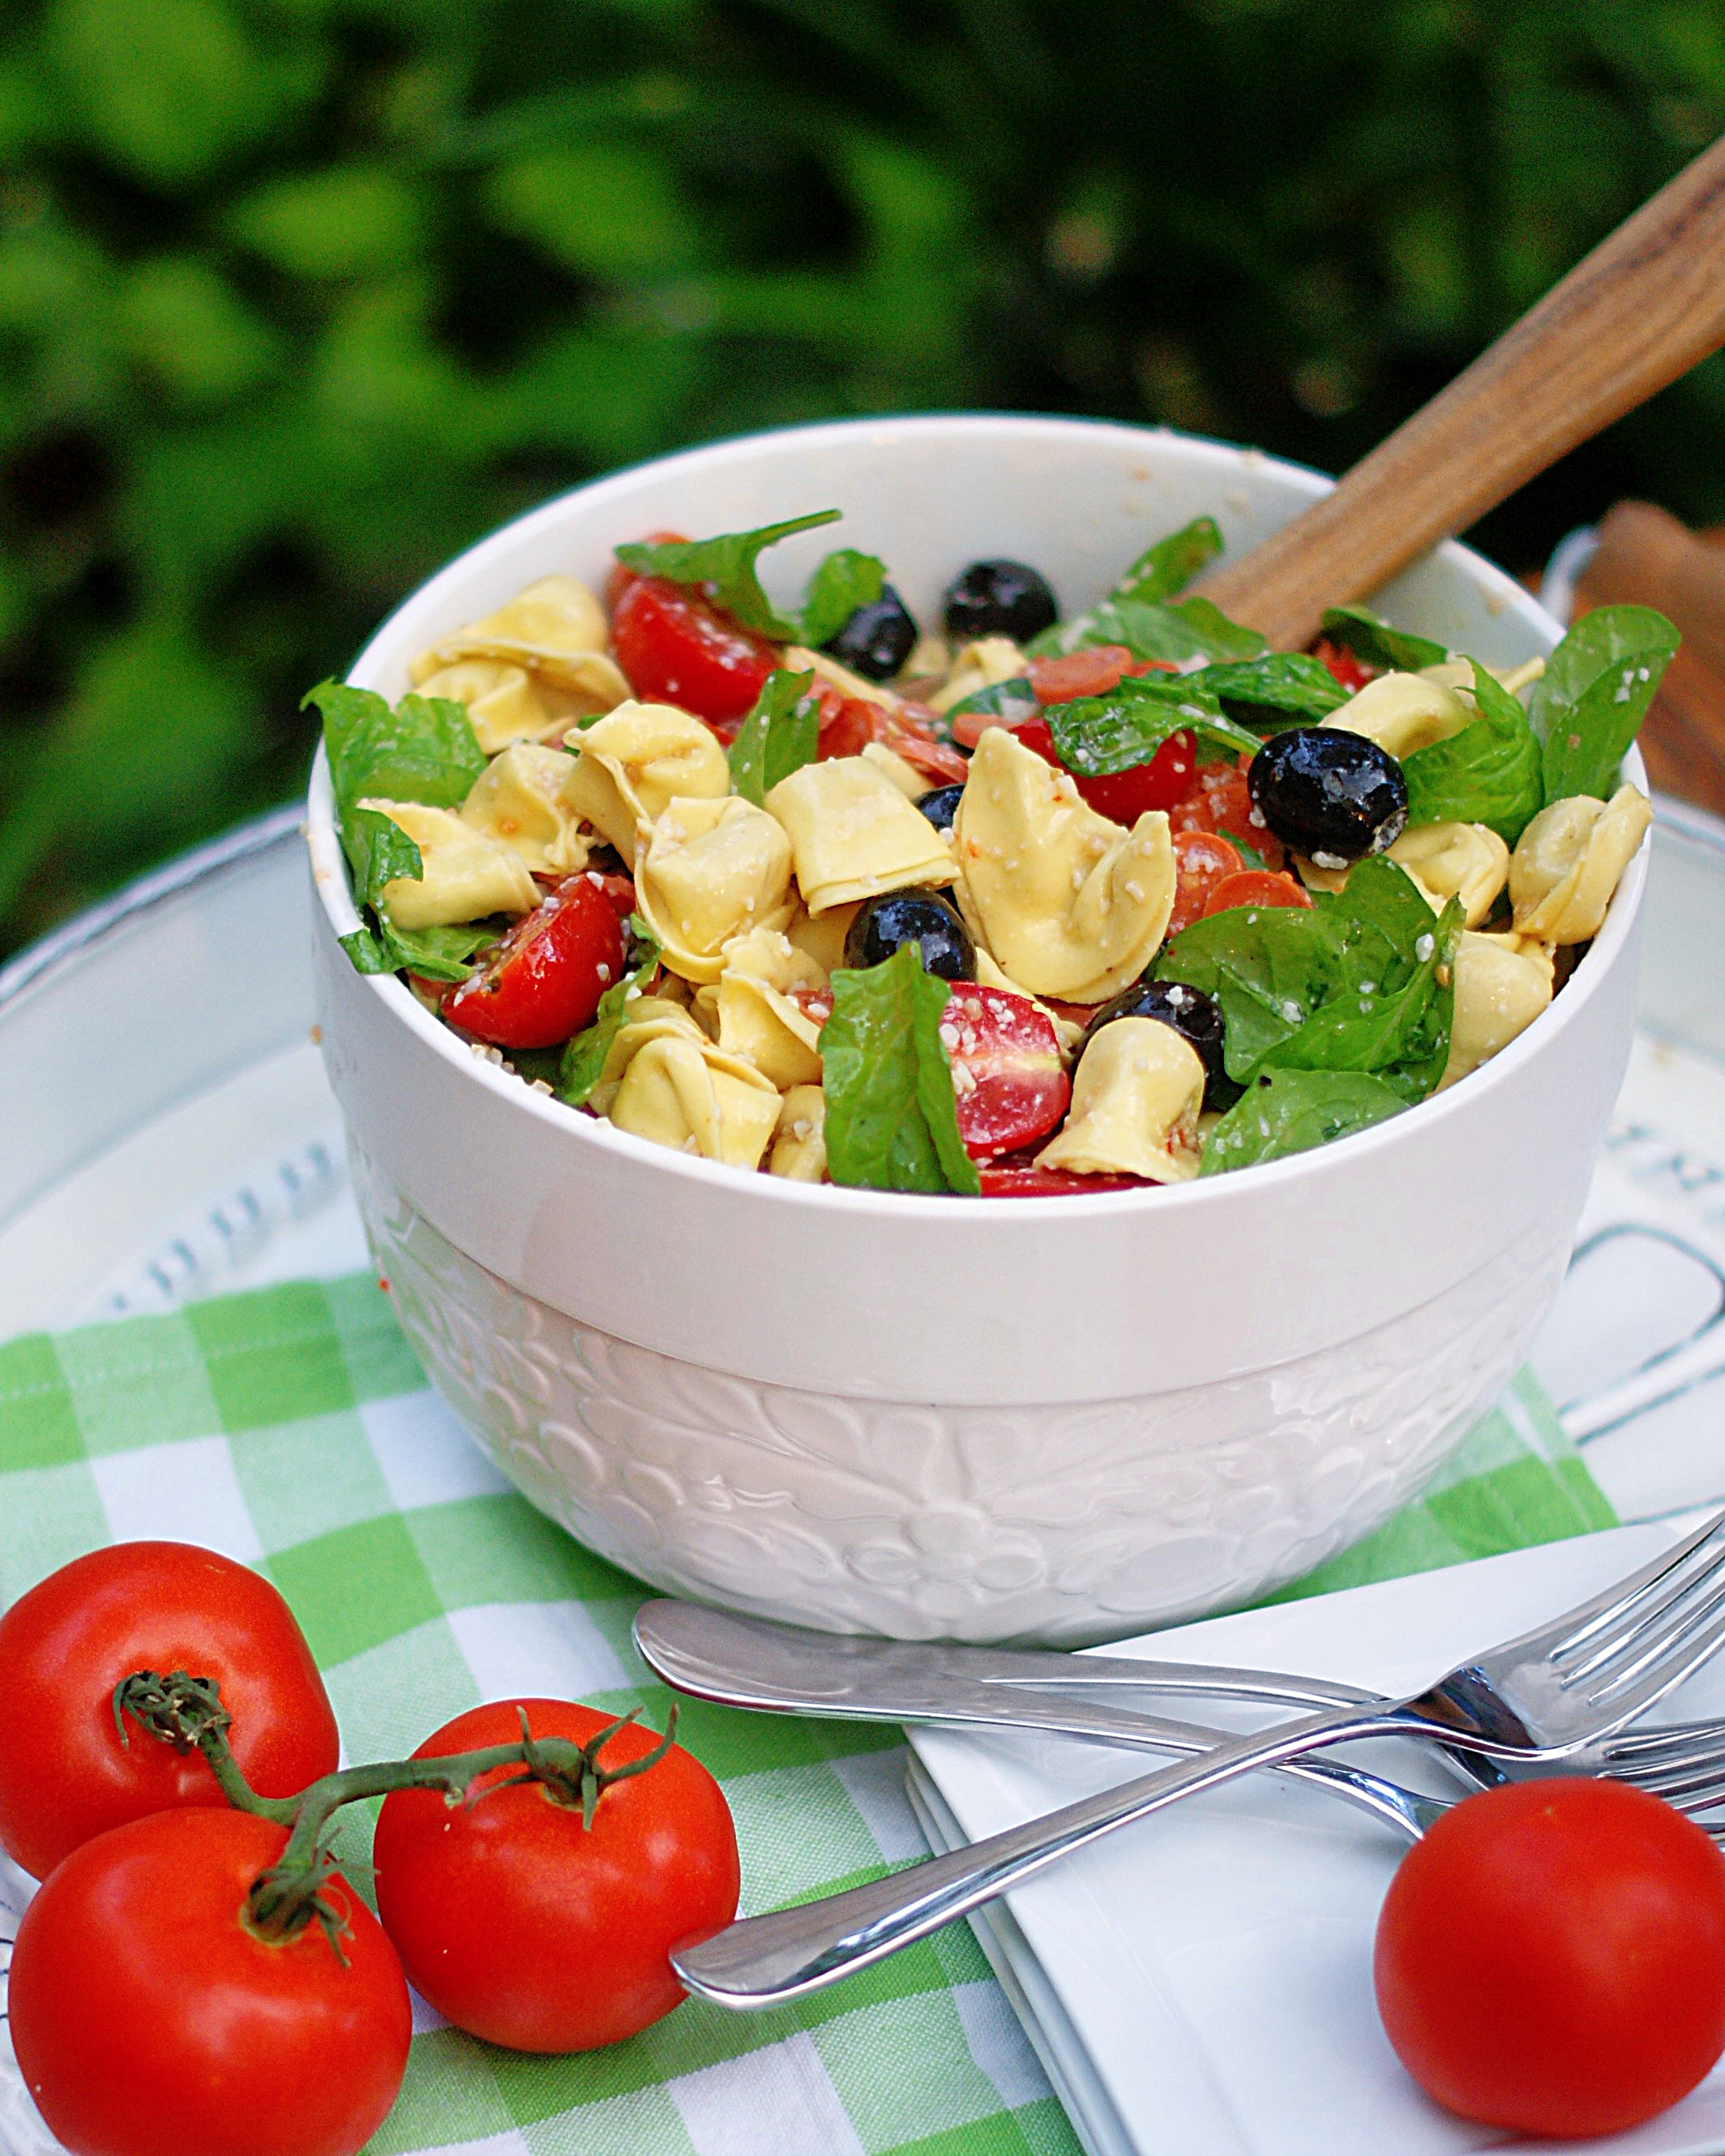 Tortellini Pasta Salad with olives, pepperoni, parmesan, tomatoes and spinach in a big white bowl.